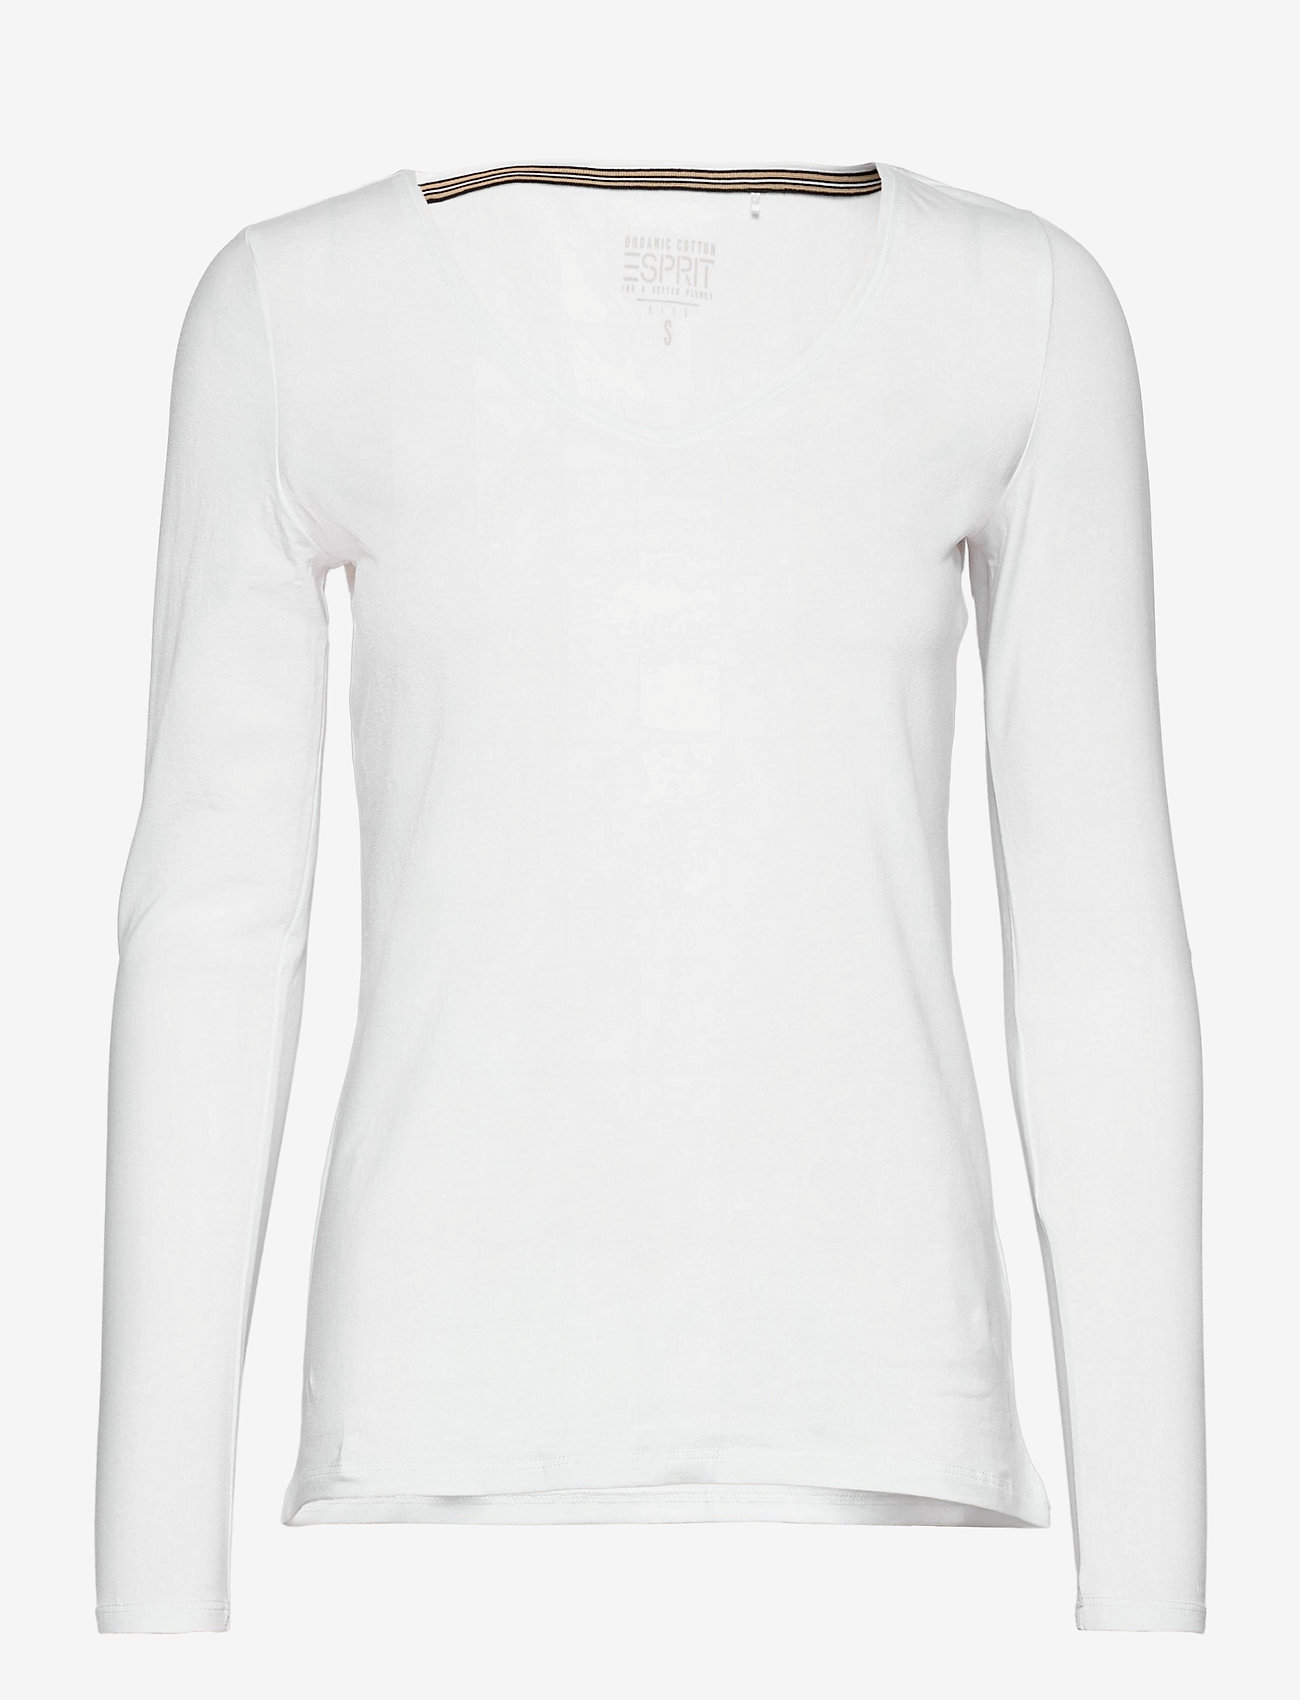 Esprit Casual - T-Shirts - long-sleeved tops - white - 0